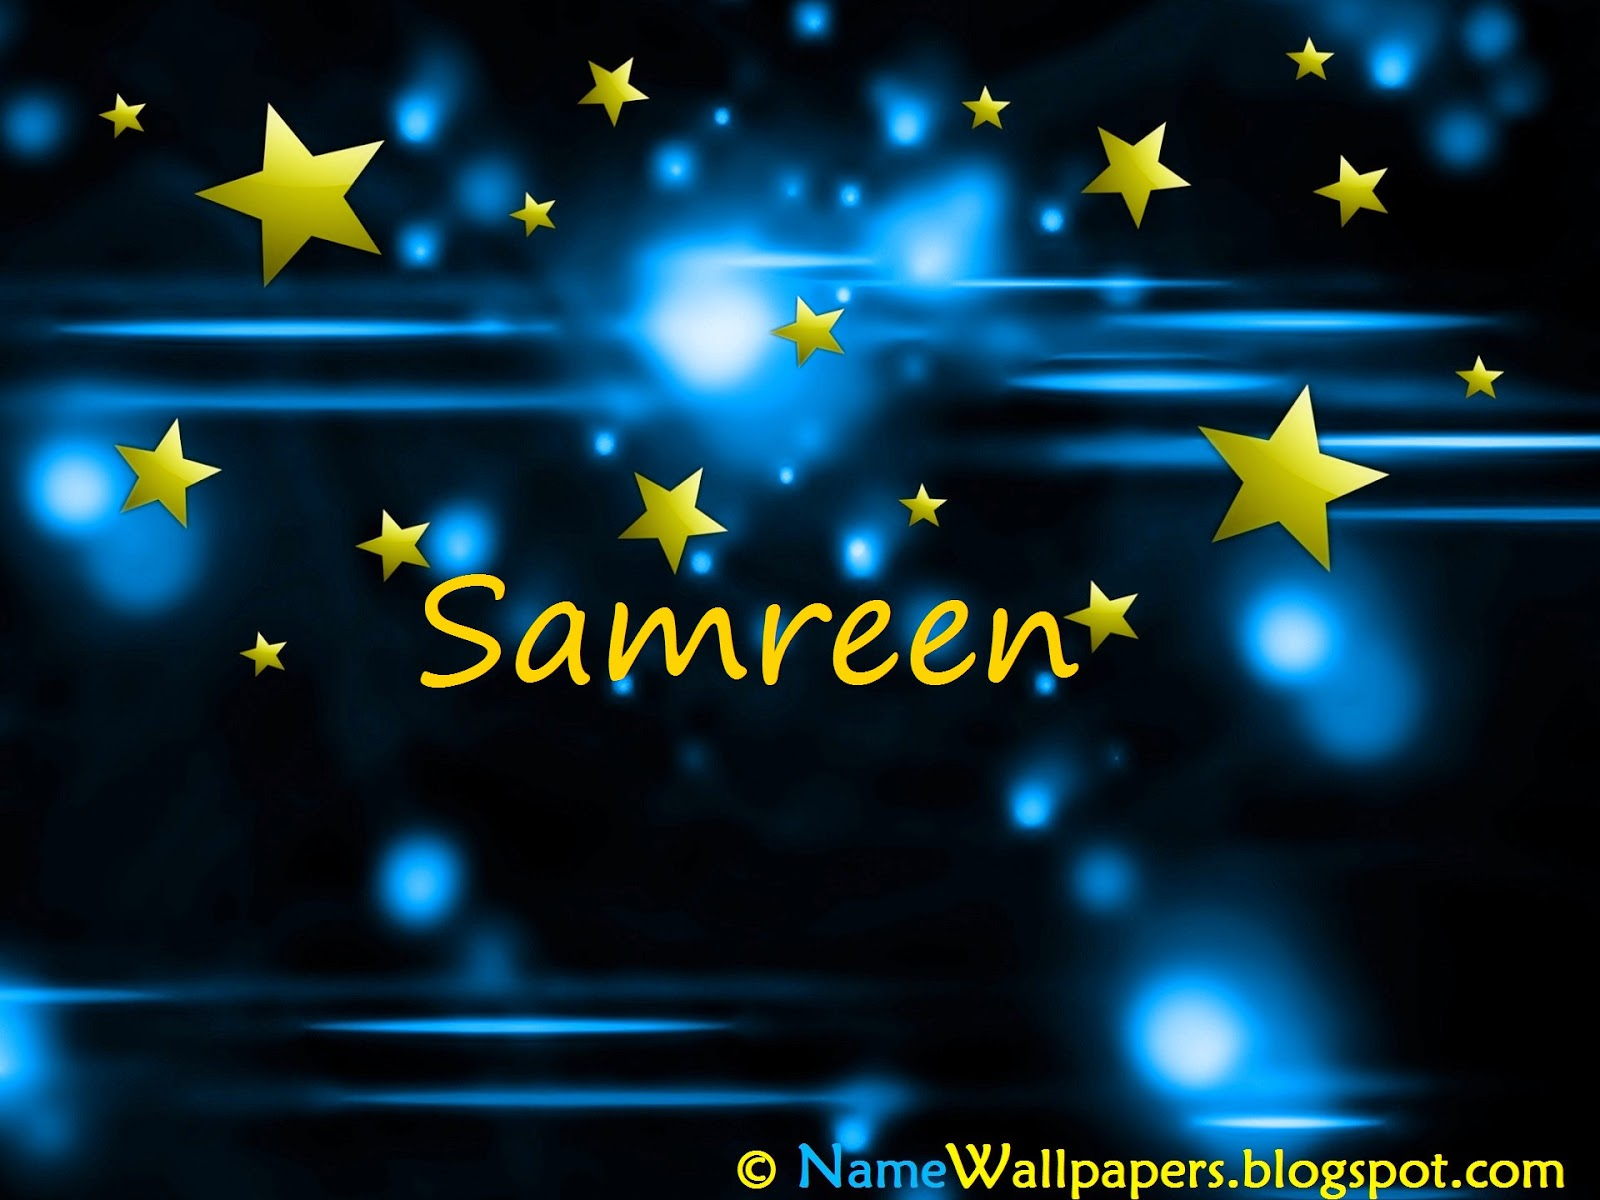 Samreen Name Wallpaper